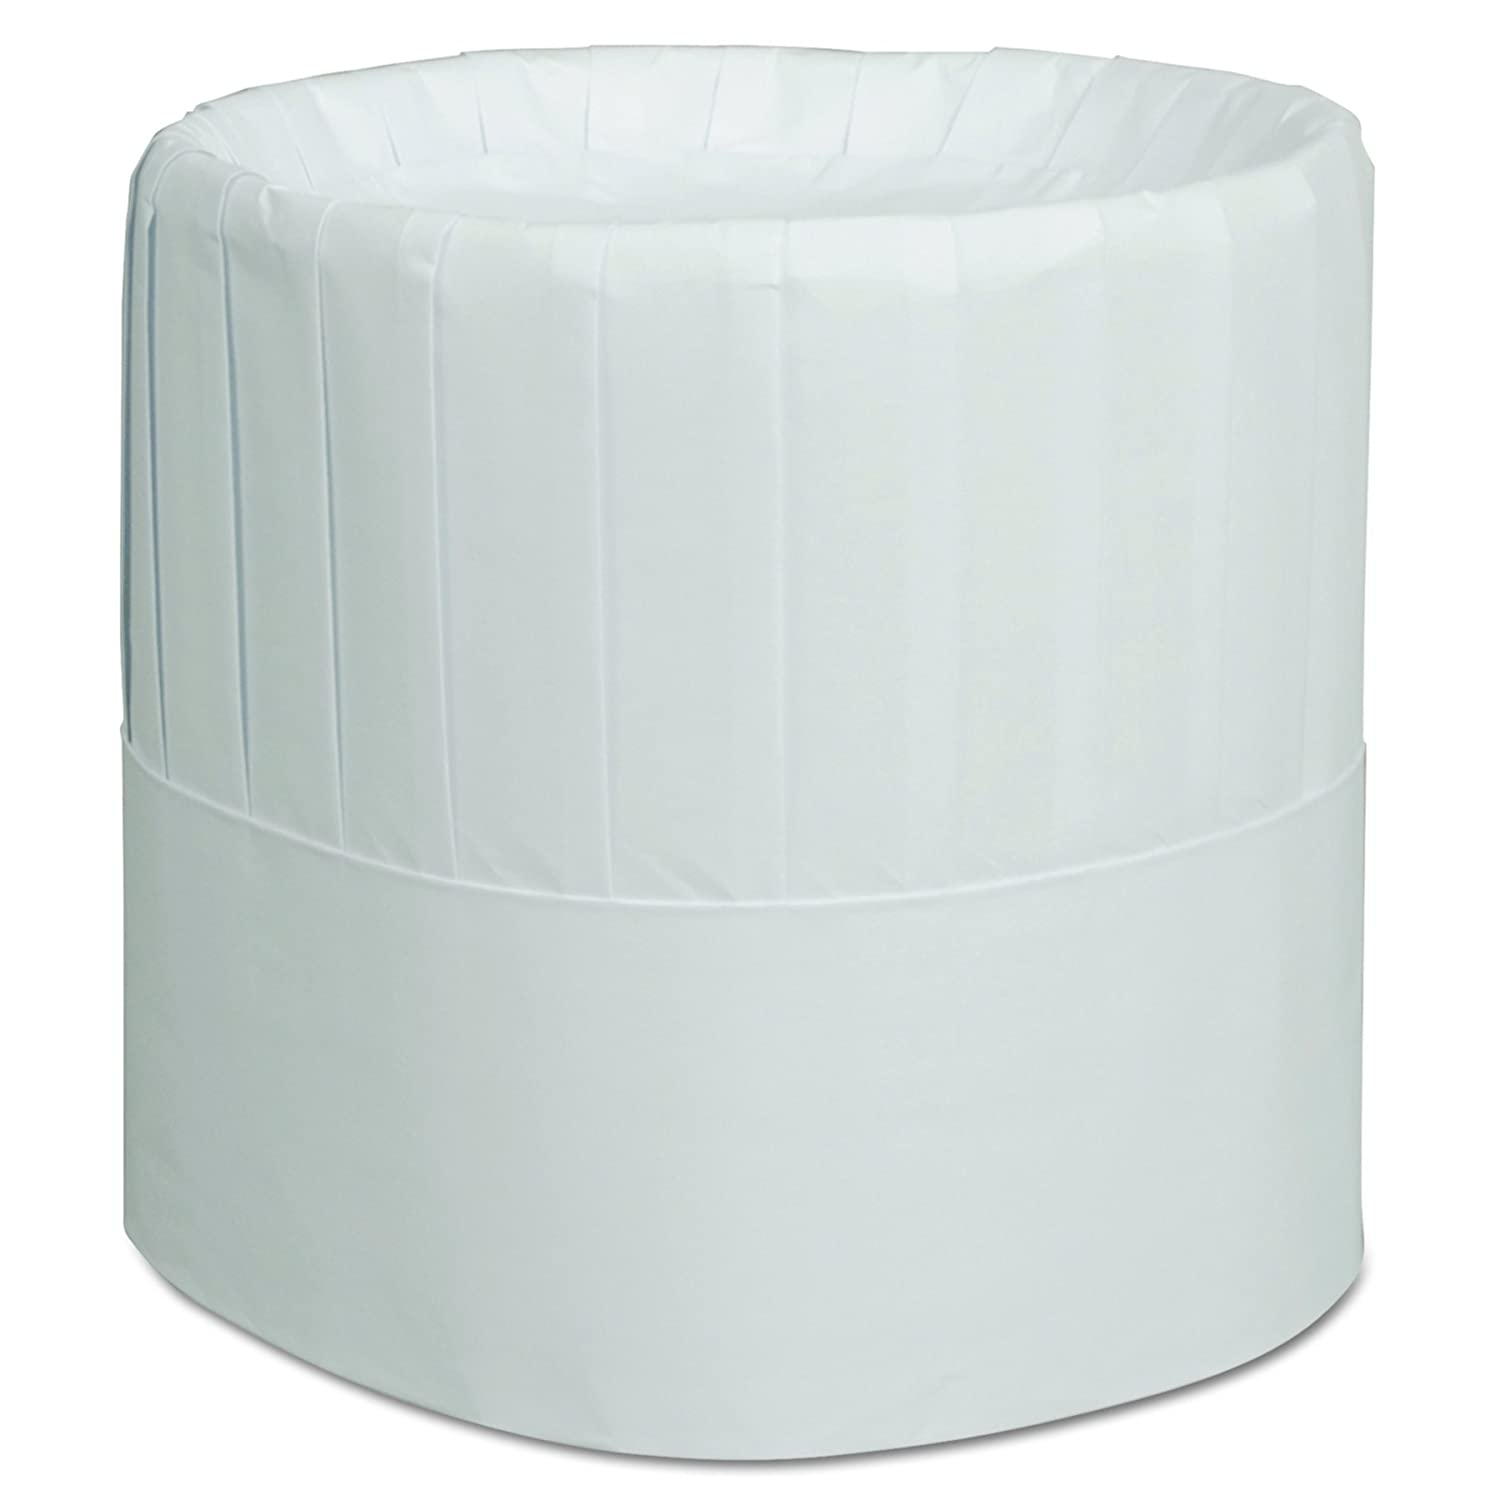 Case of 28 Tall Royal RCH7 Pleated Chefs Hats Adjustable White Paper 7 in